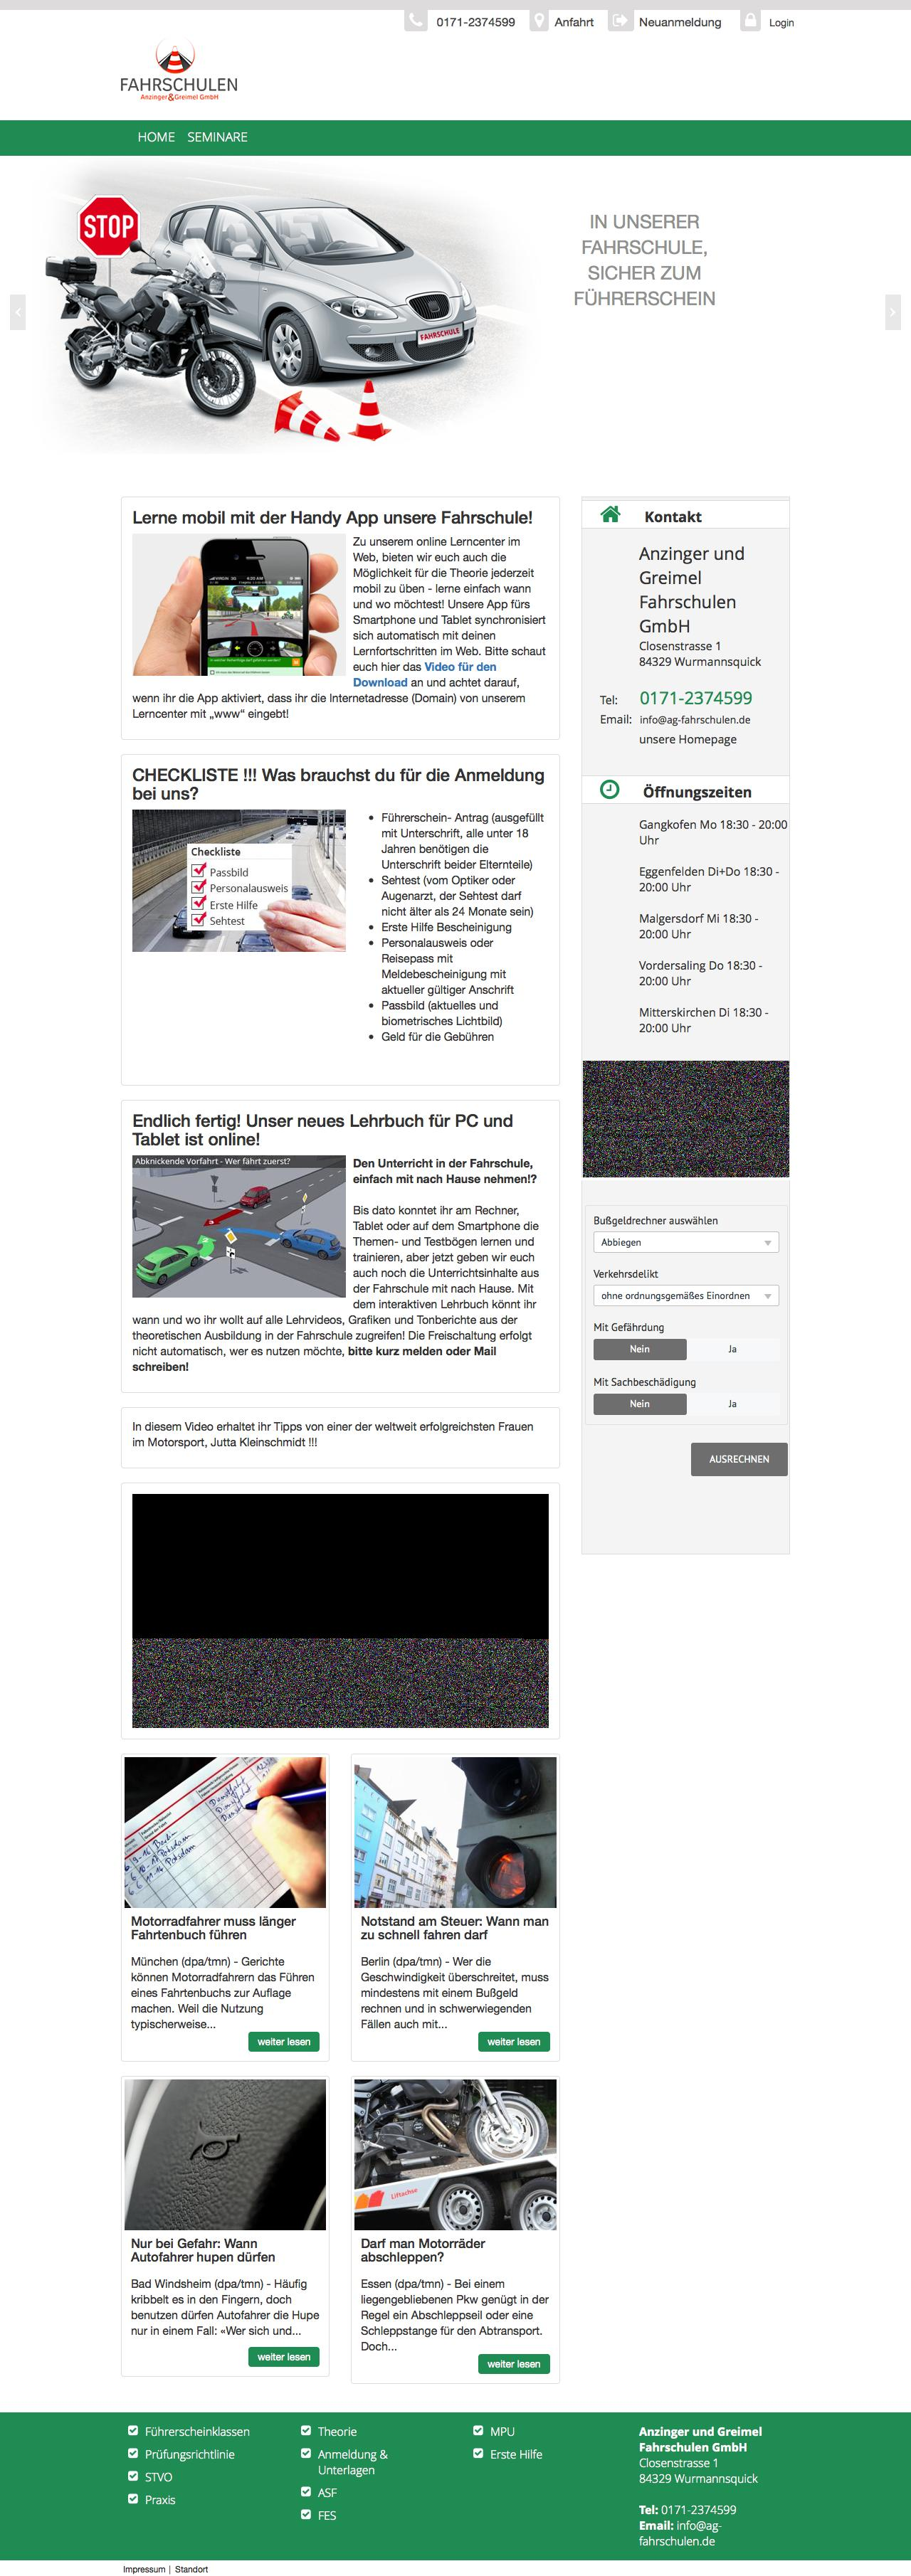 Test Optiker 2015 Web Design Example A Page On Ag Fahrschulen Theorie De